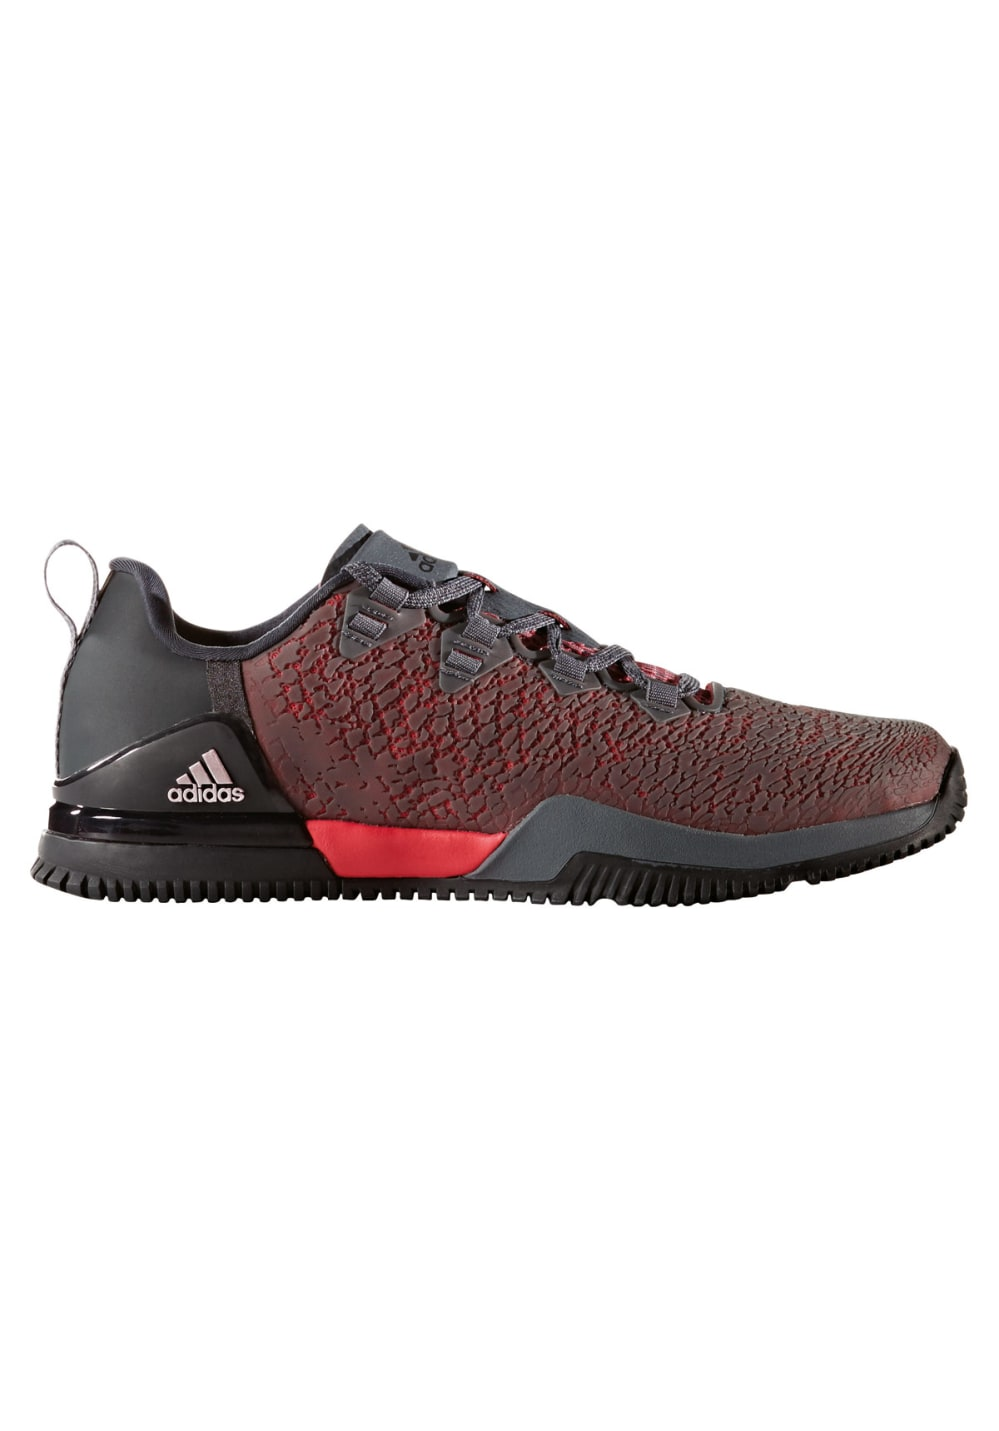 Fitness Shoes | adidas | Women's CrazyPower TR Shoes